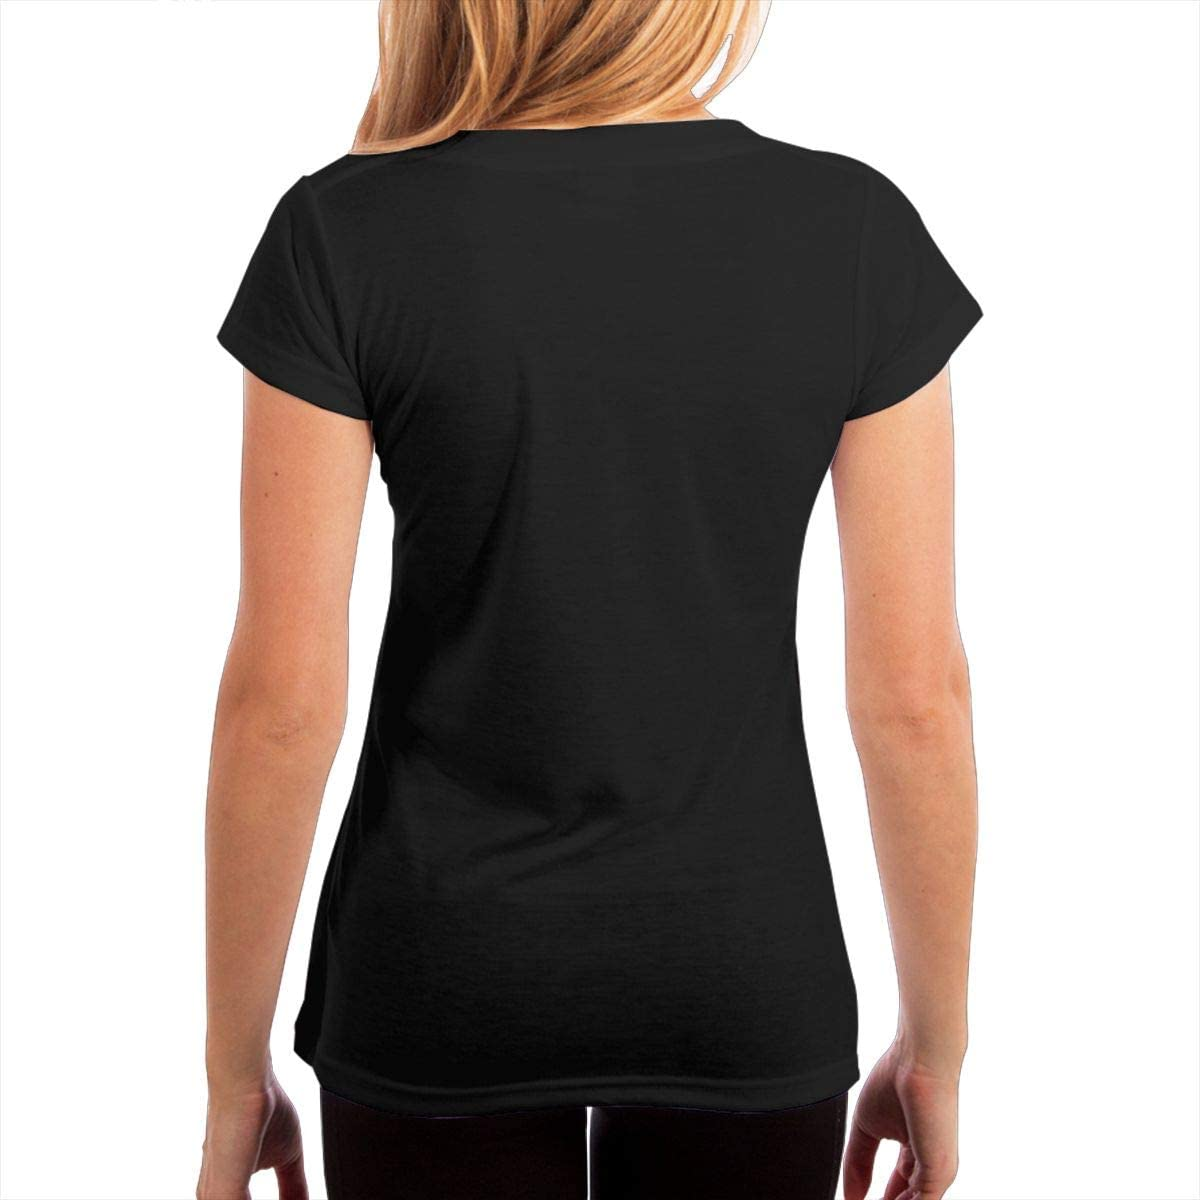 My Biggest Fear Cotton Womens Vneck Line Short-Sleeved T-Shirts Tee Popular Tops Black